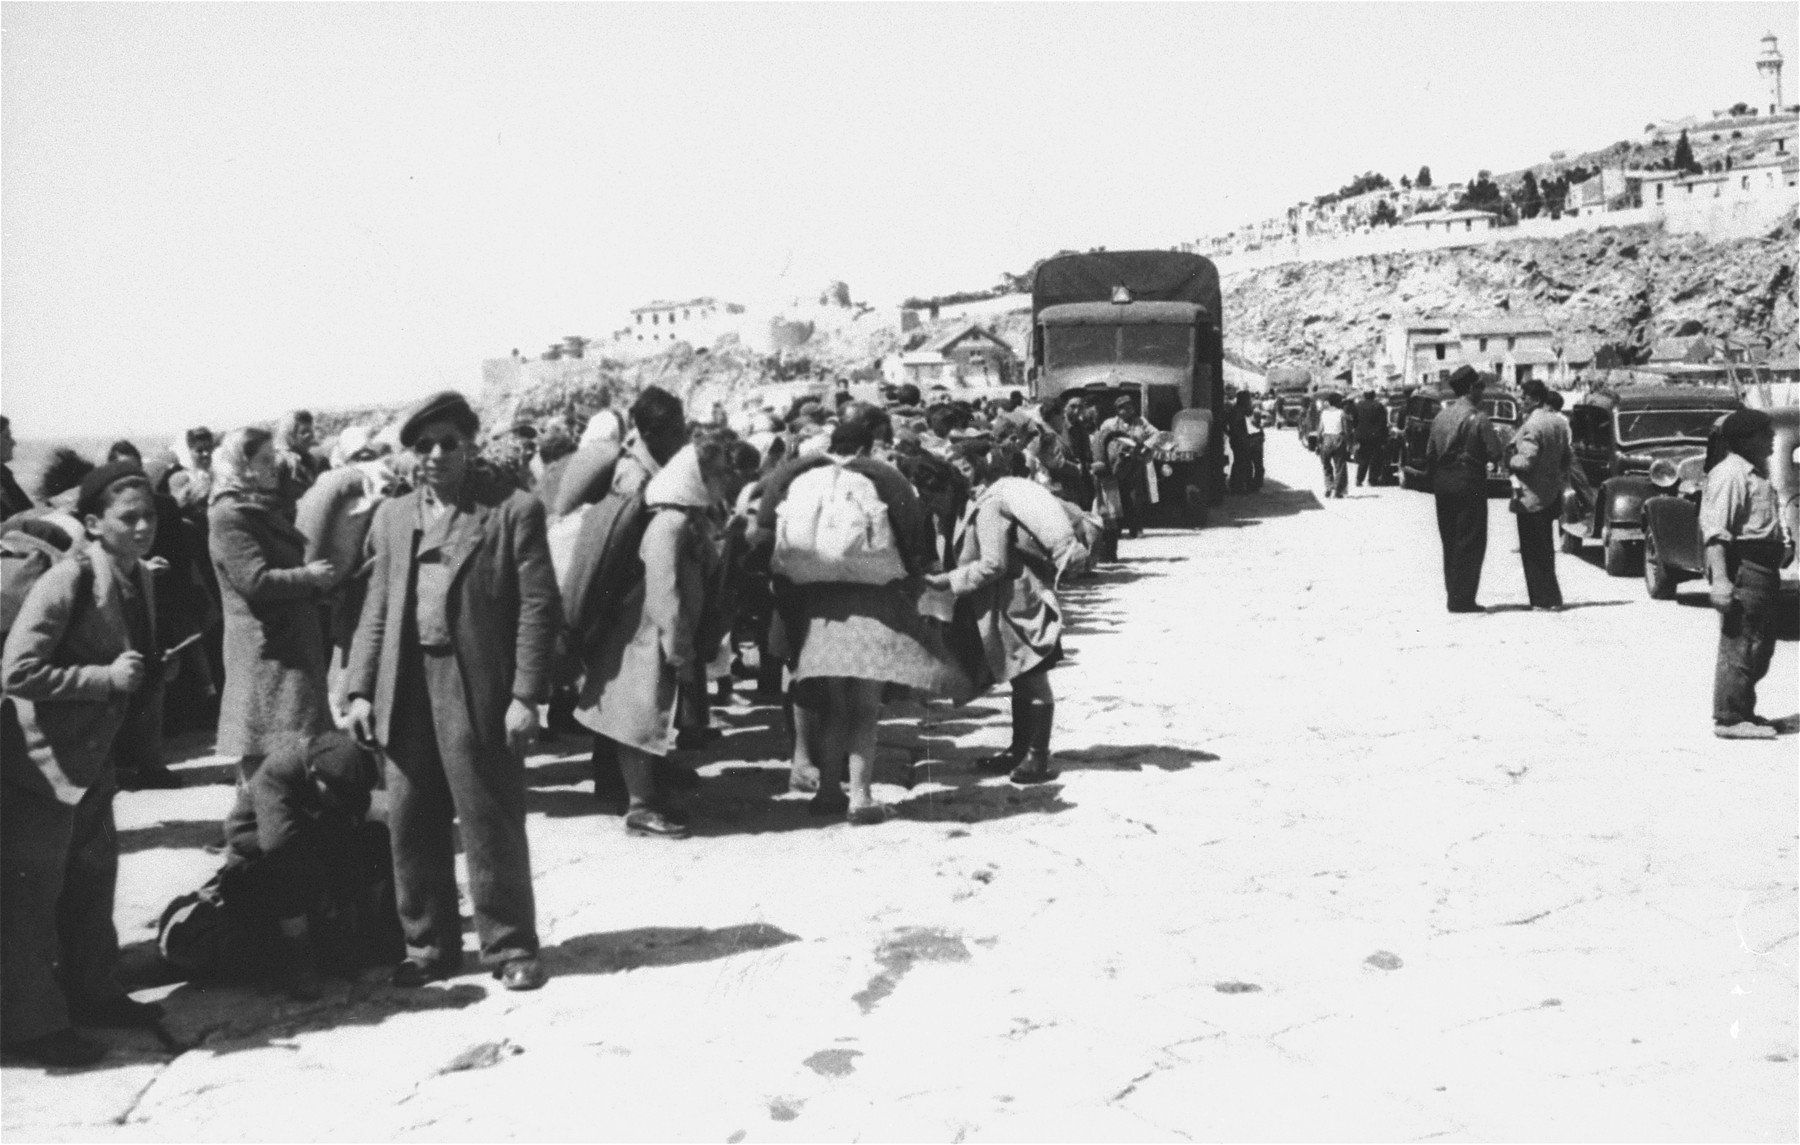 Exodus 1947 refugees wait to board the President Warfield on a quay in Sete's harbor, on their way to Palestine.